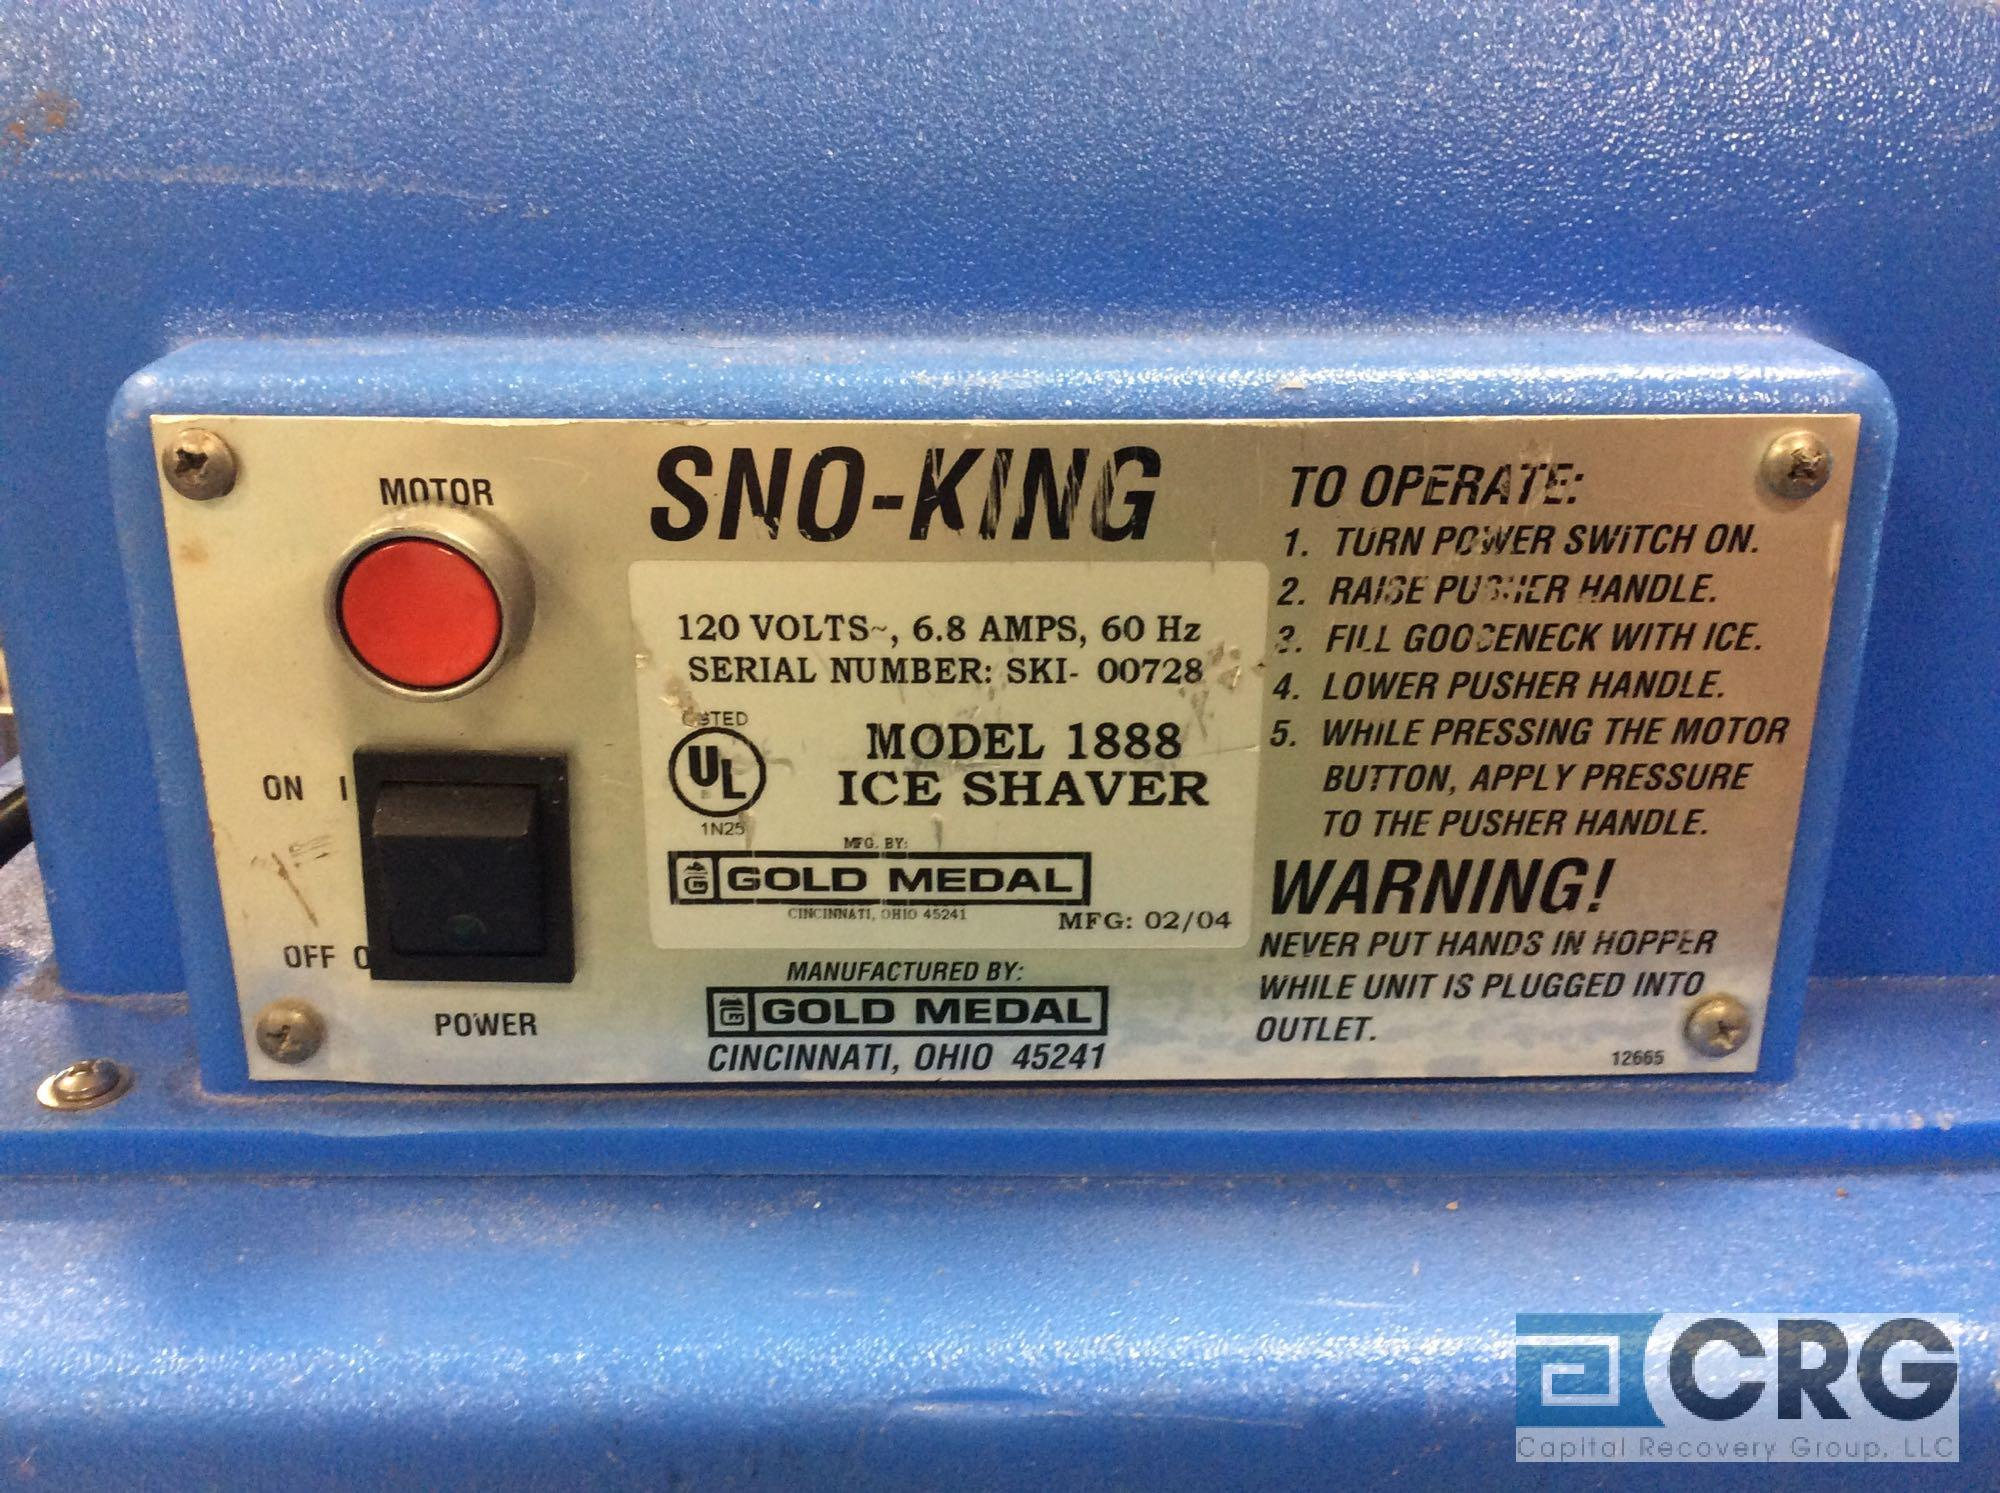 Gold Medal SNO-KING 1888 ice shaver, 1 phase - Image 2 of 2